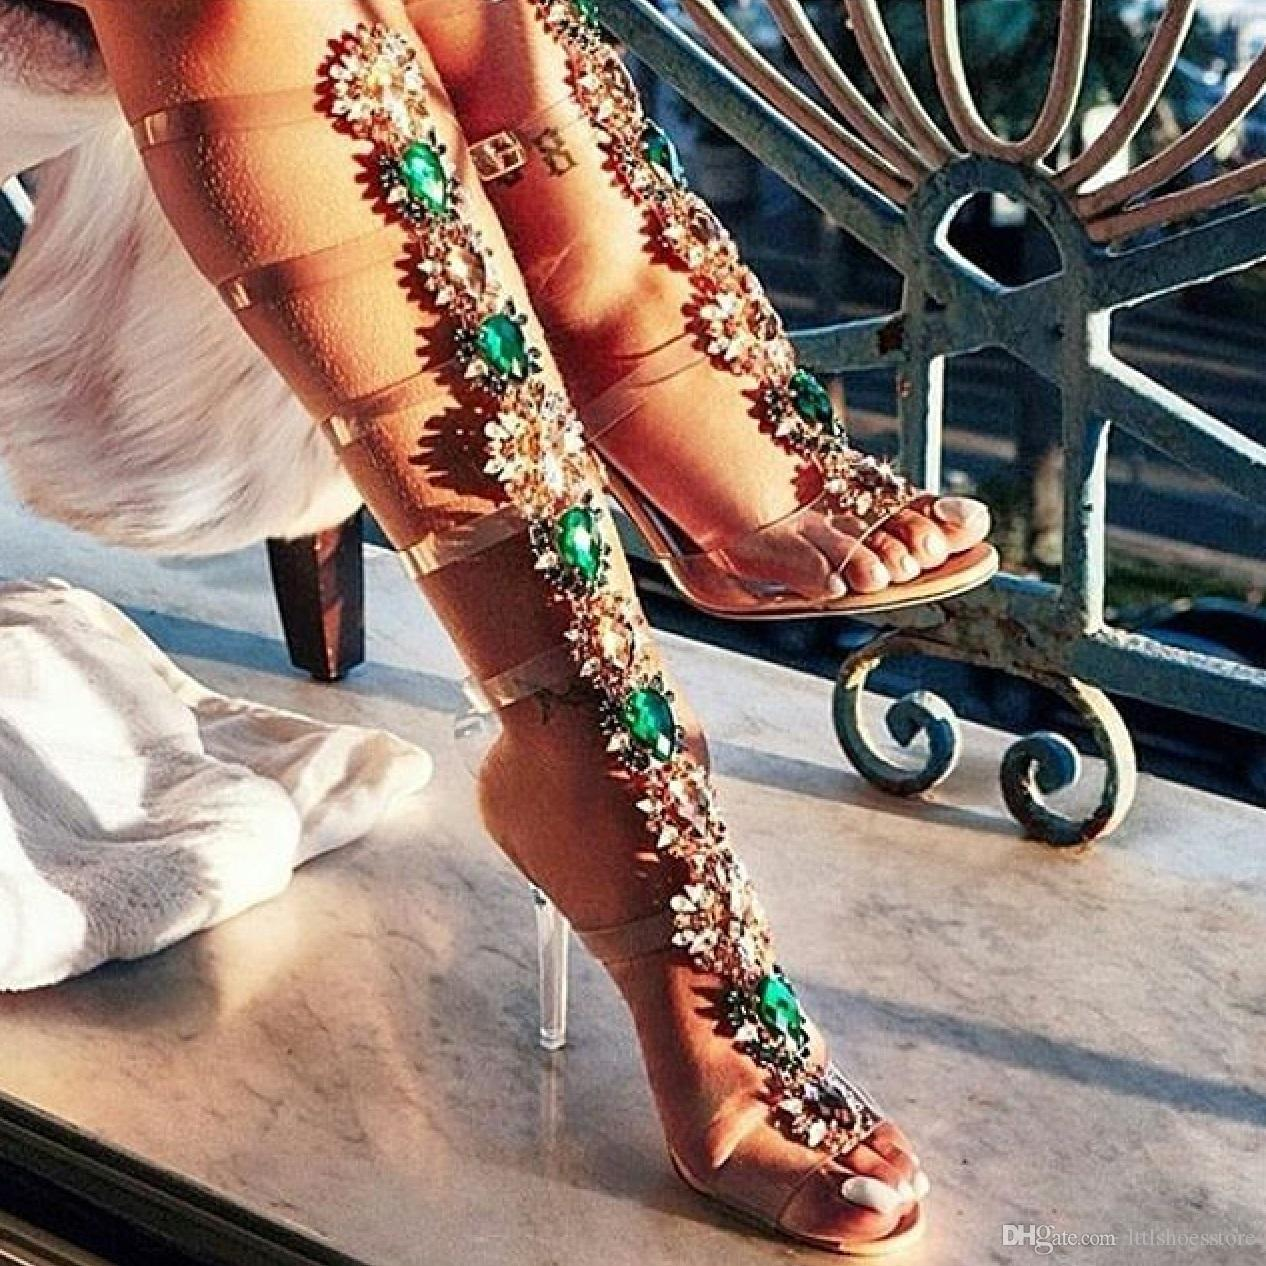 Lttl Brand Shoes Runway Celebrity Style Rihanna Shoes